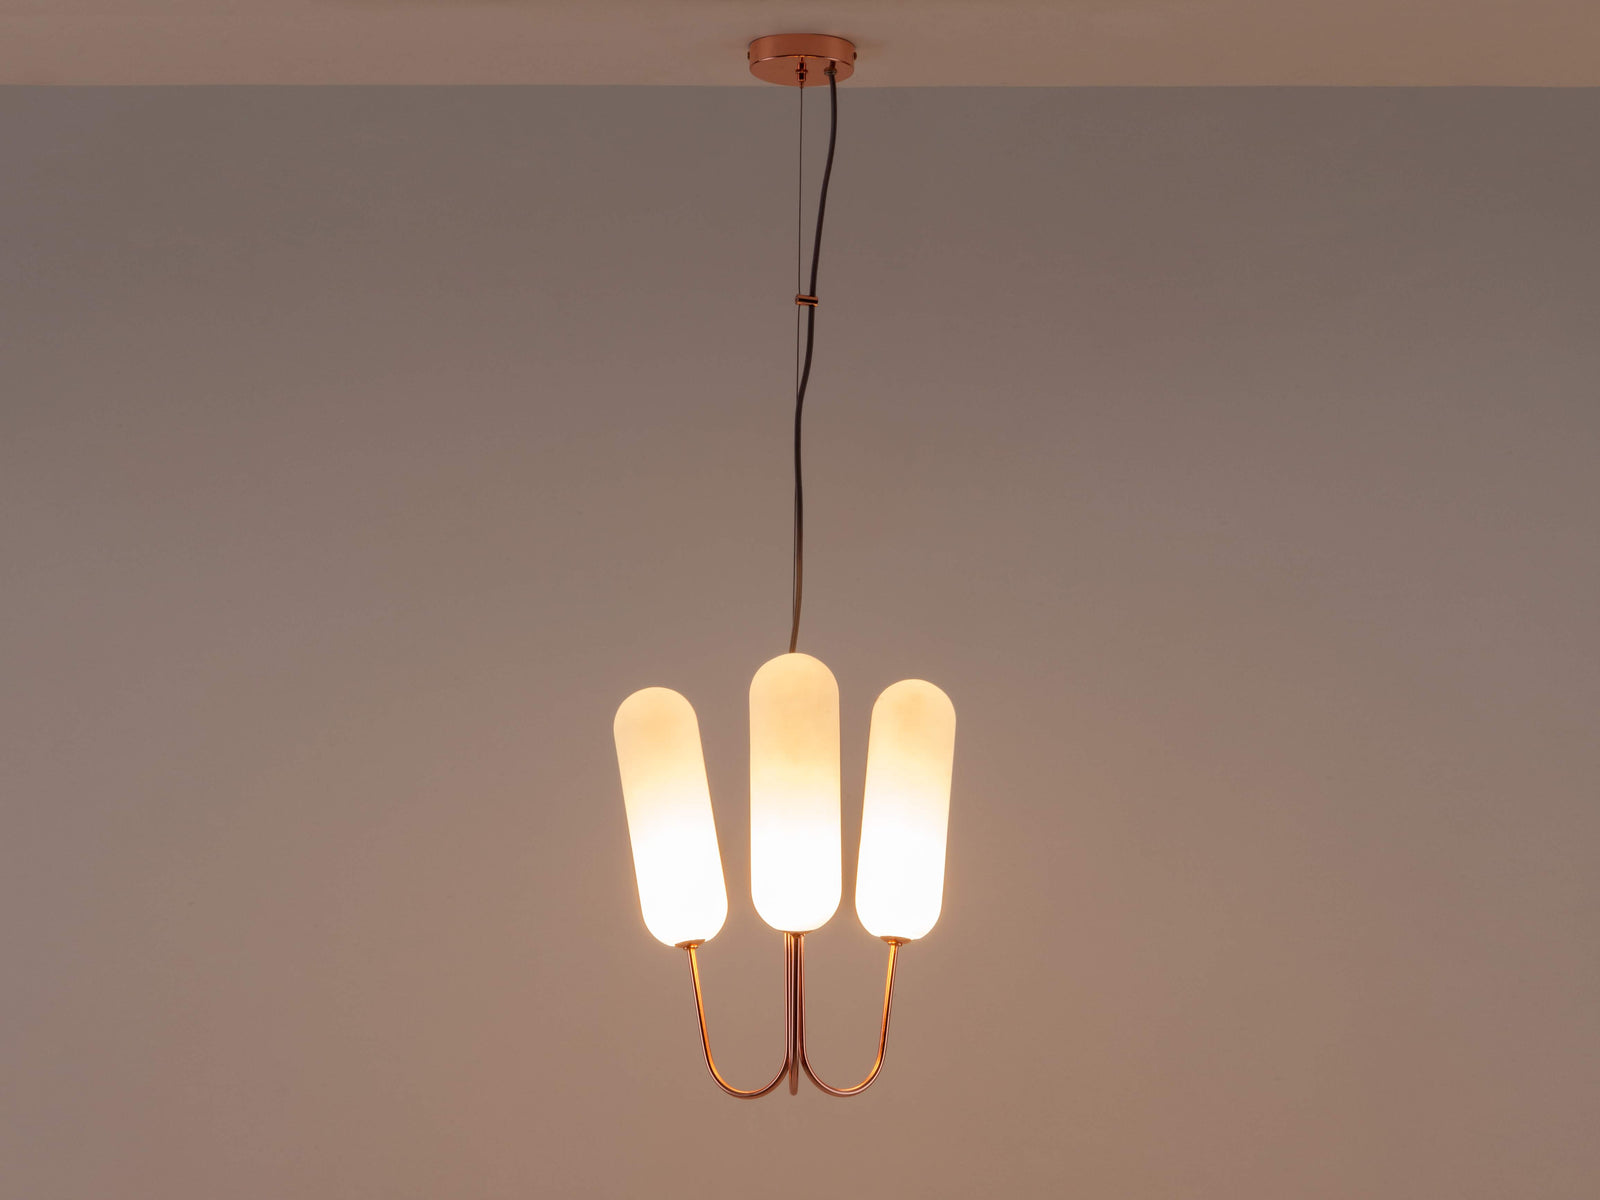 3 Light pill chandelier copper | dark | houseof.com